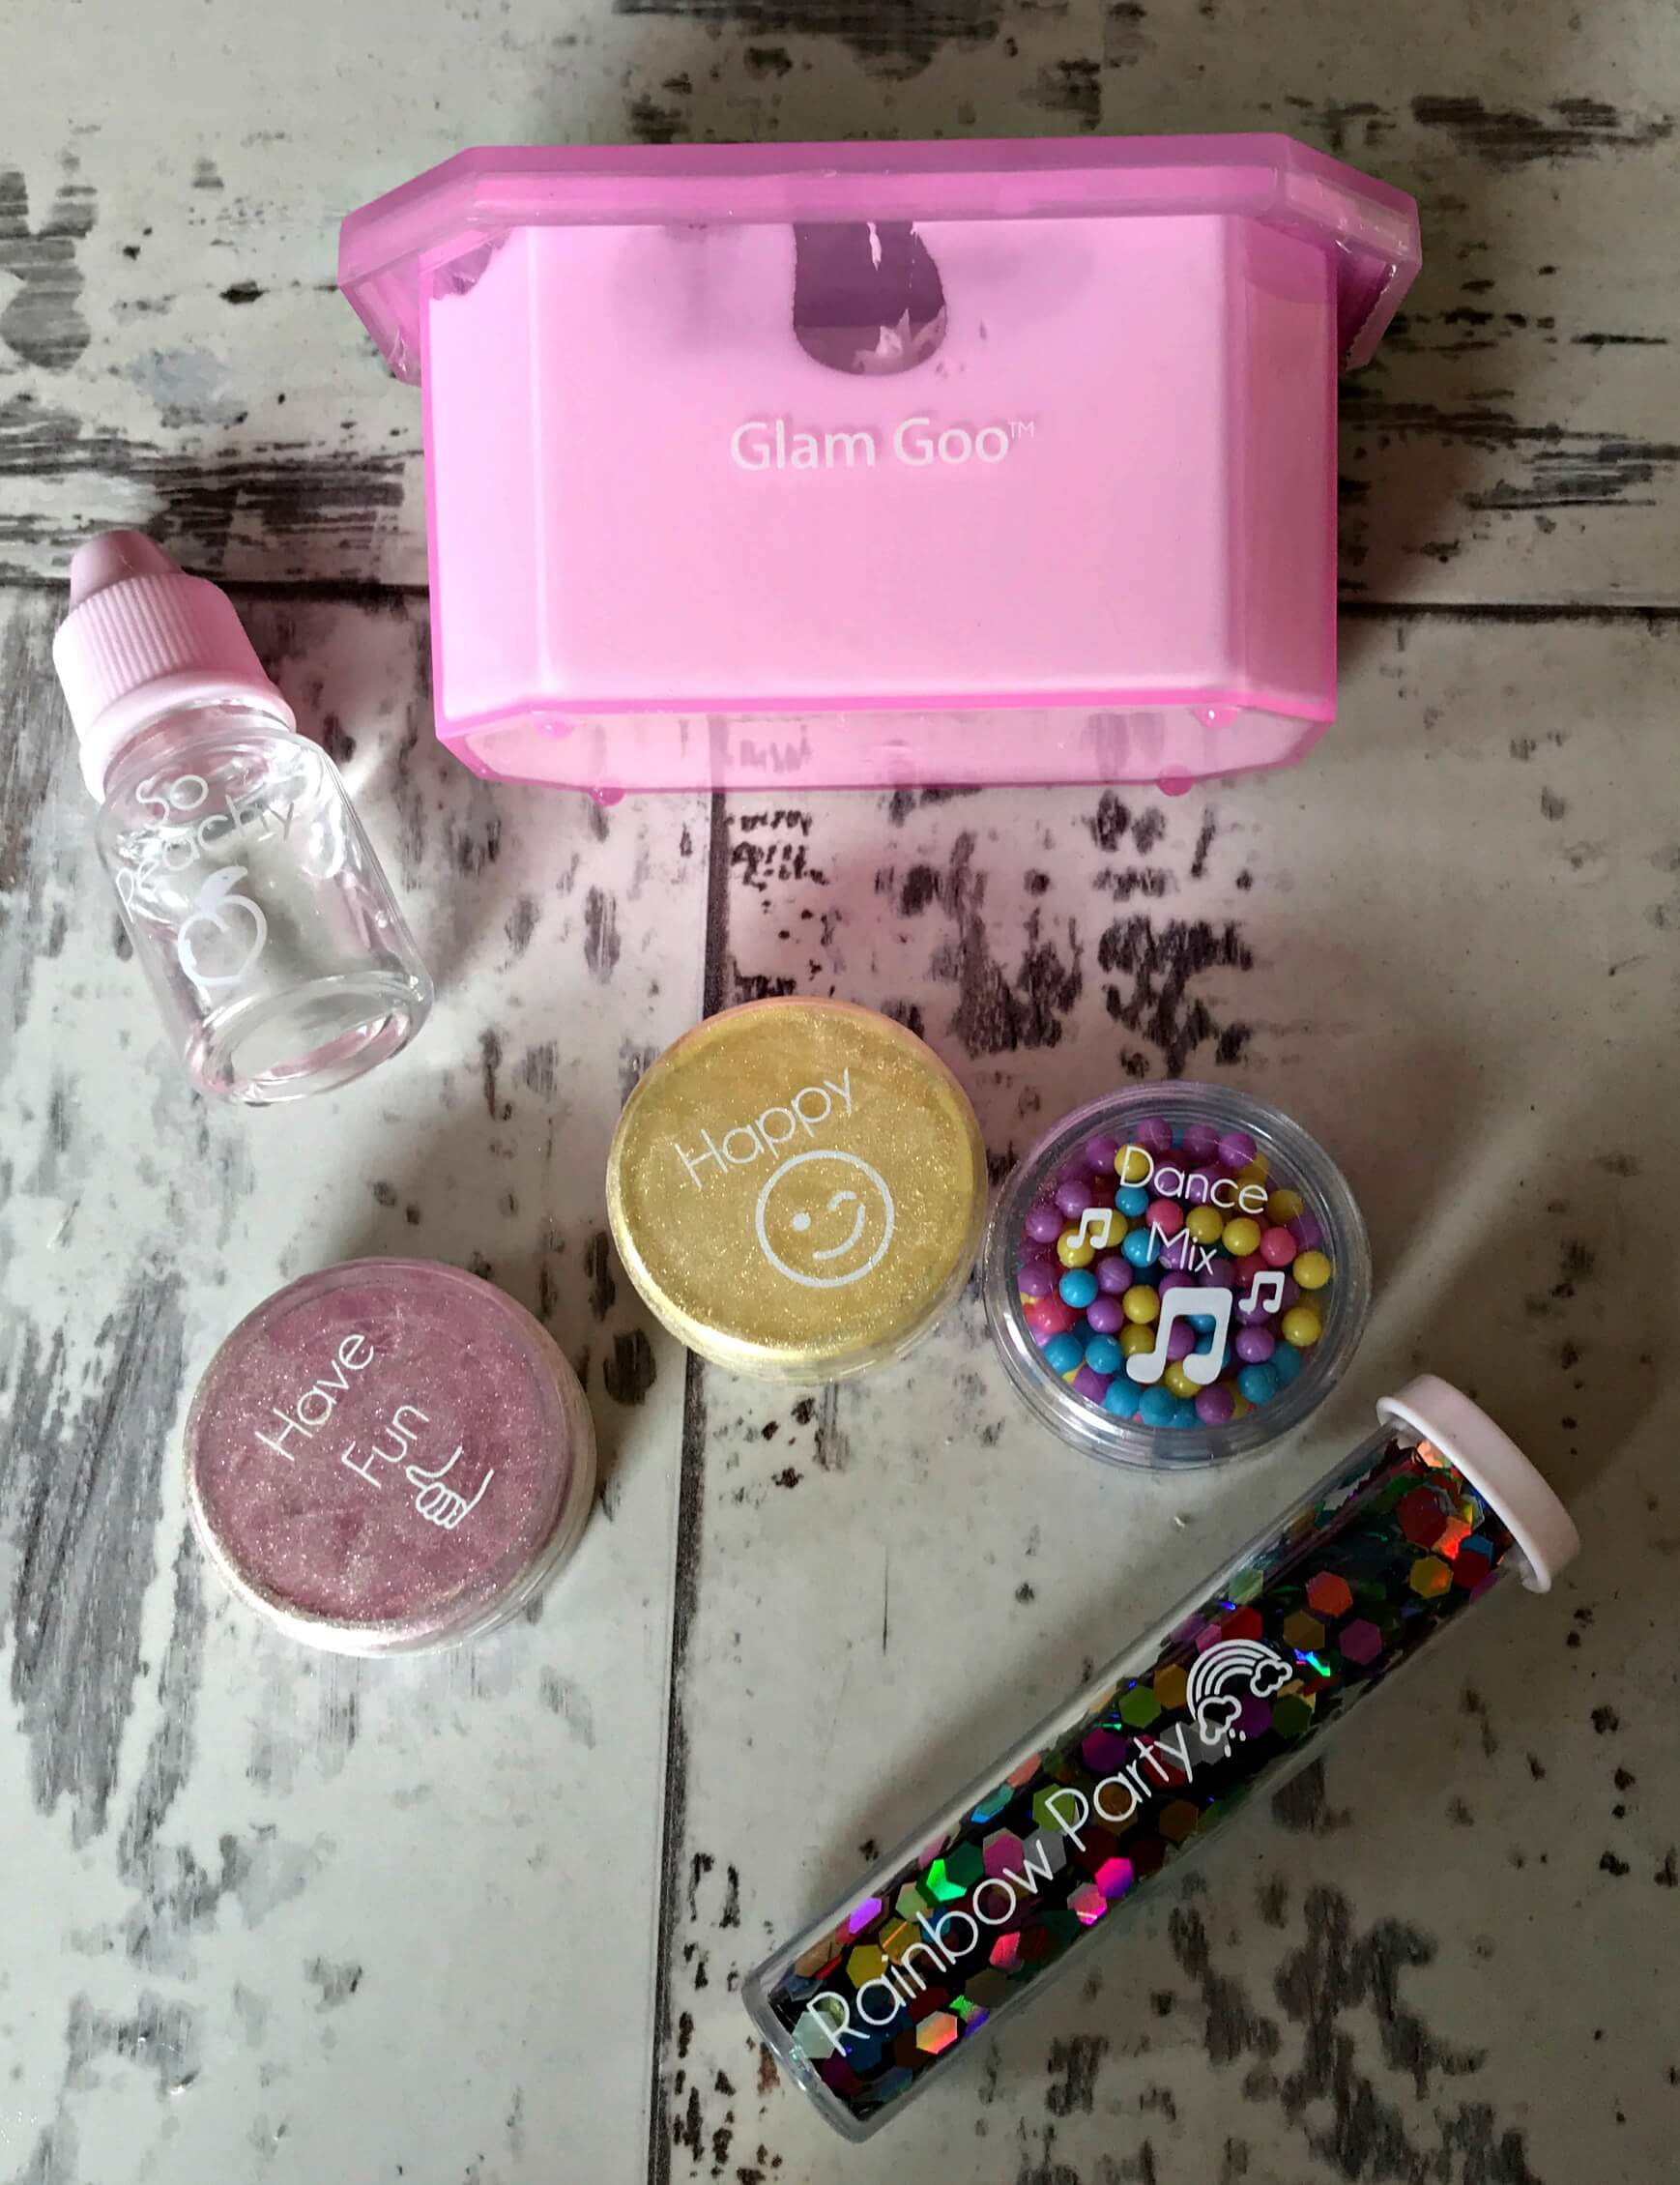 Glam Goo Slime & Accessory Confetti Pack - contents of box